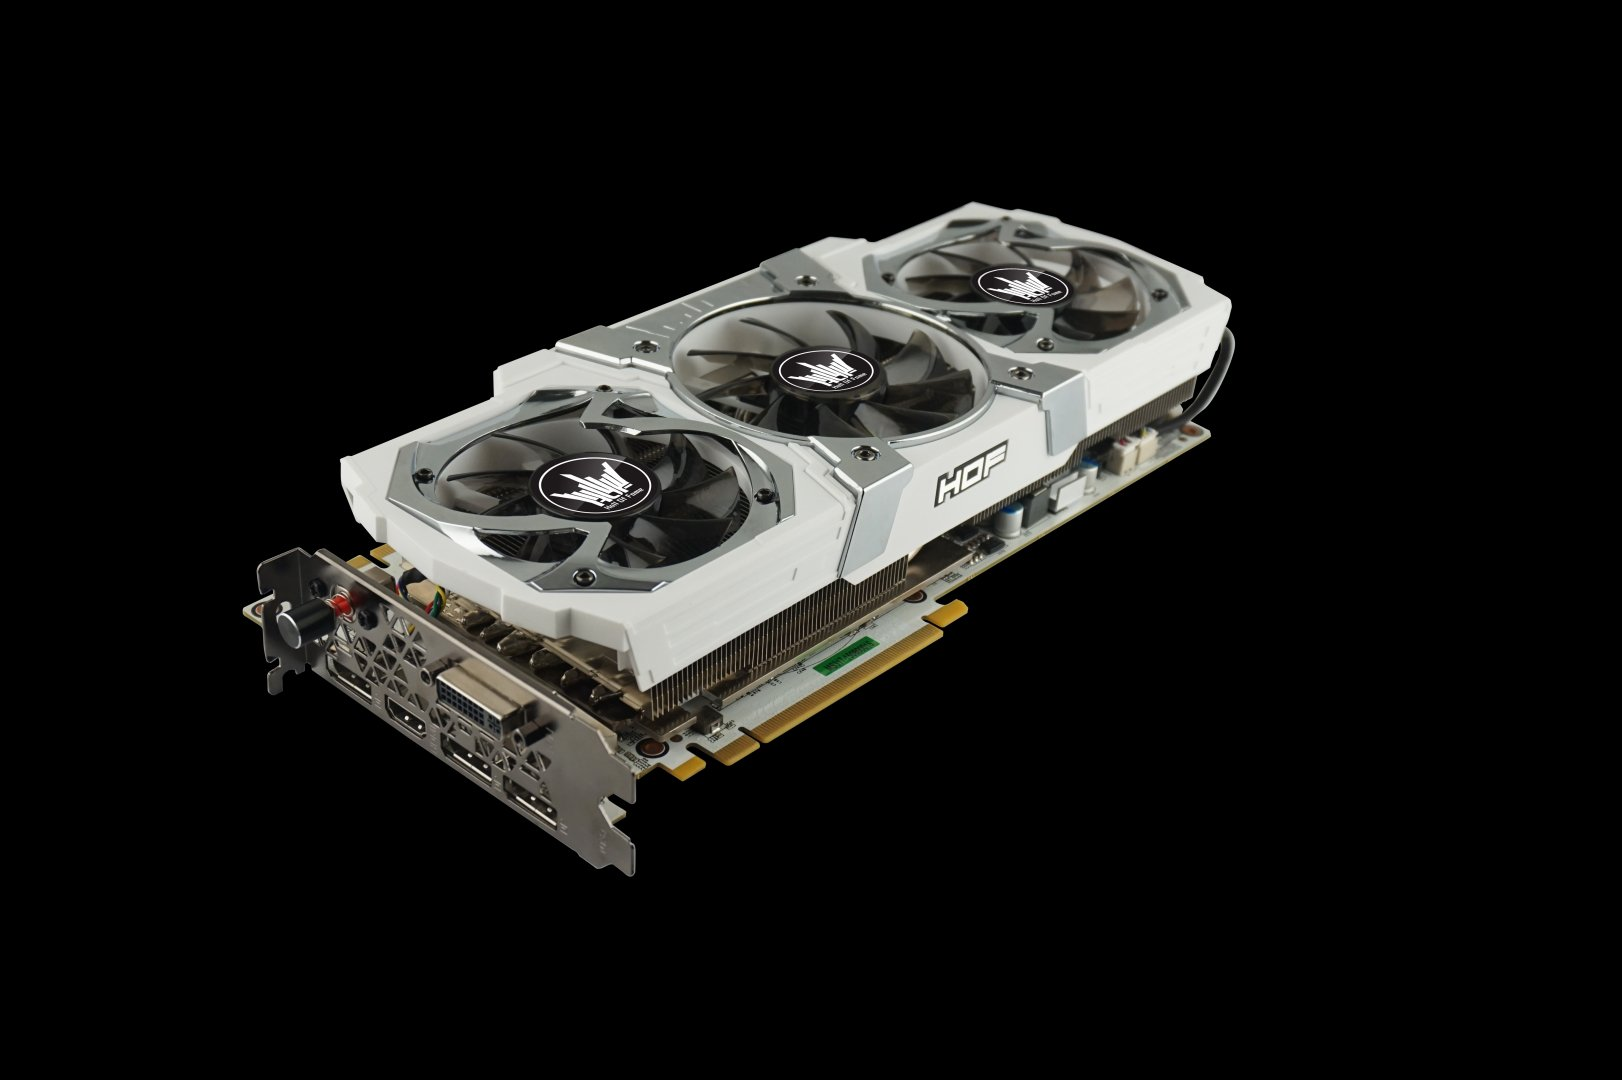 You Can't Handle the New GeForce GTX 980Ti Graphics Card